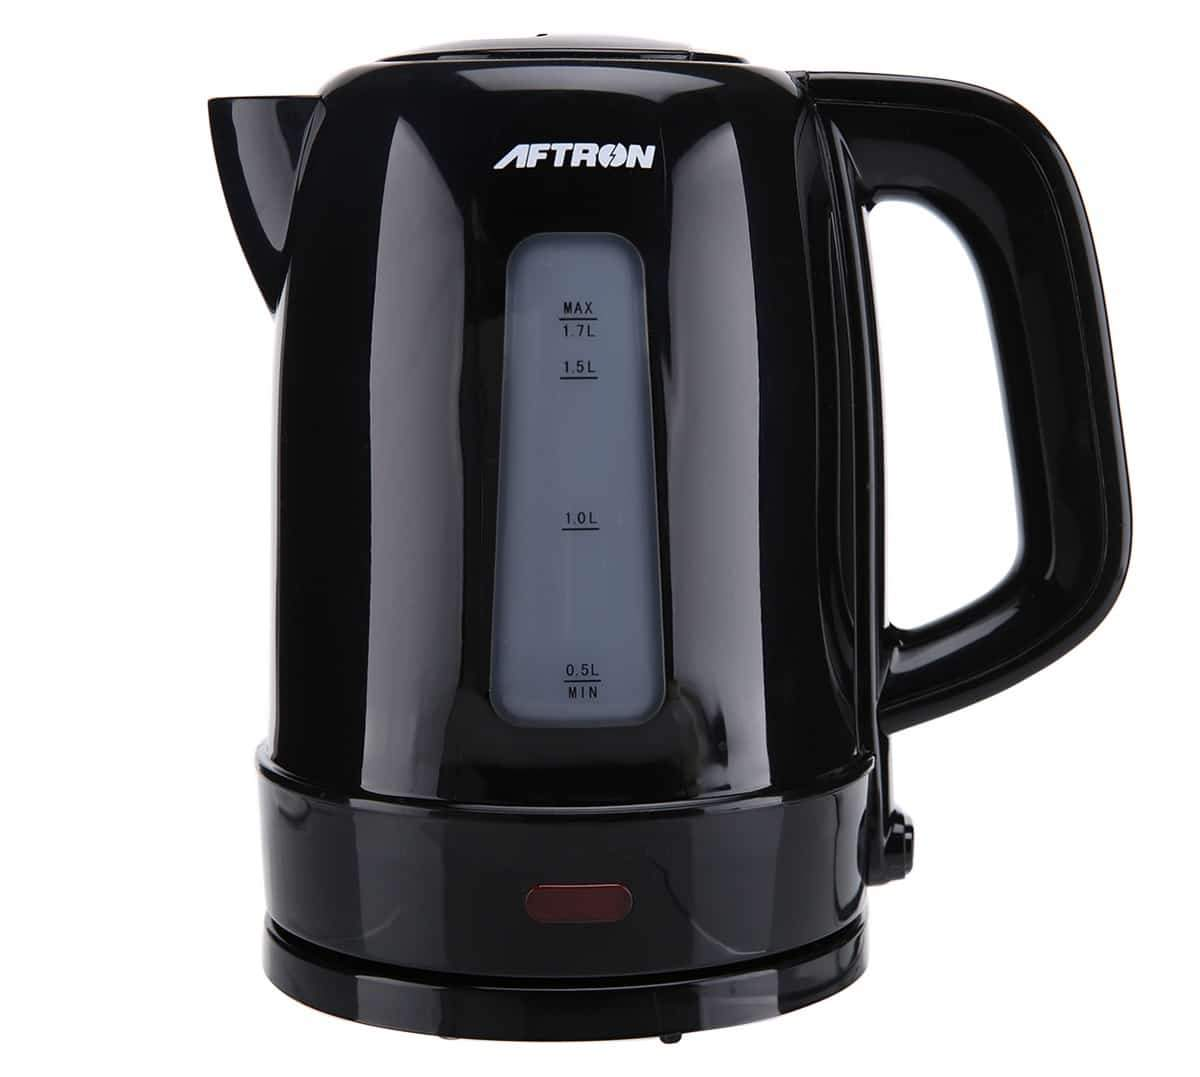 Aftron Kettle & Toaster Breakfast Set (750 W, 2,220 W, Black) - SquareDubai